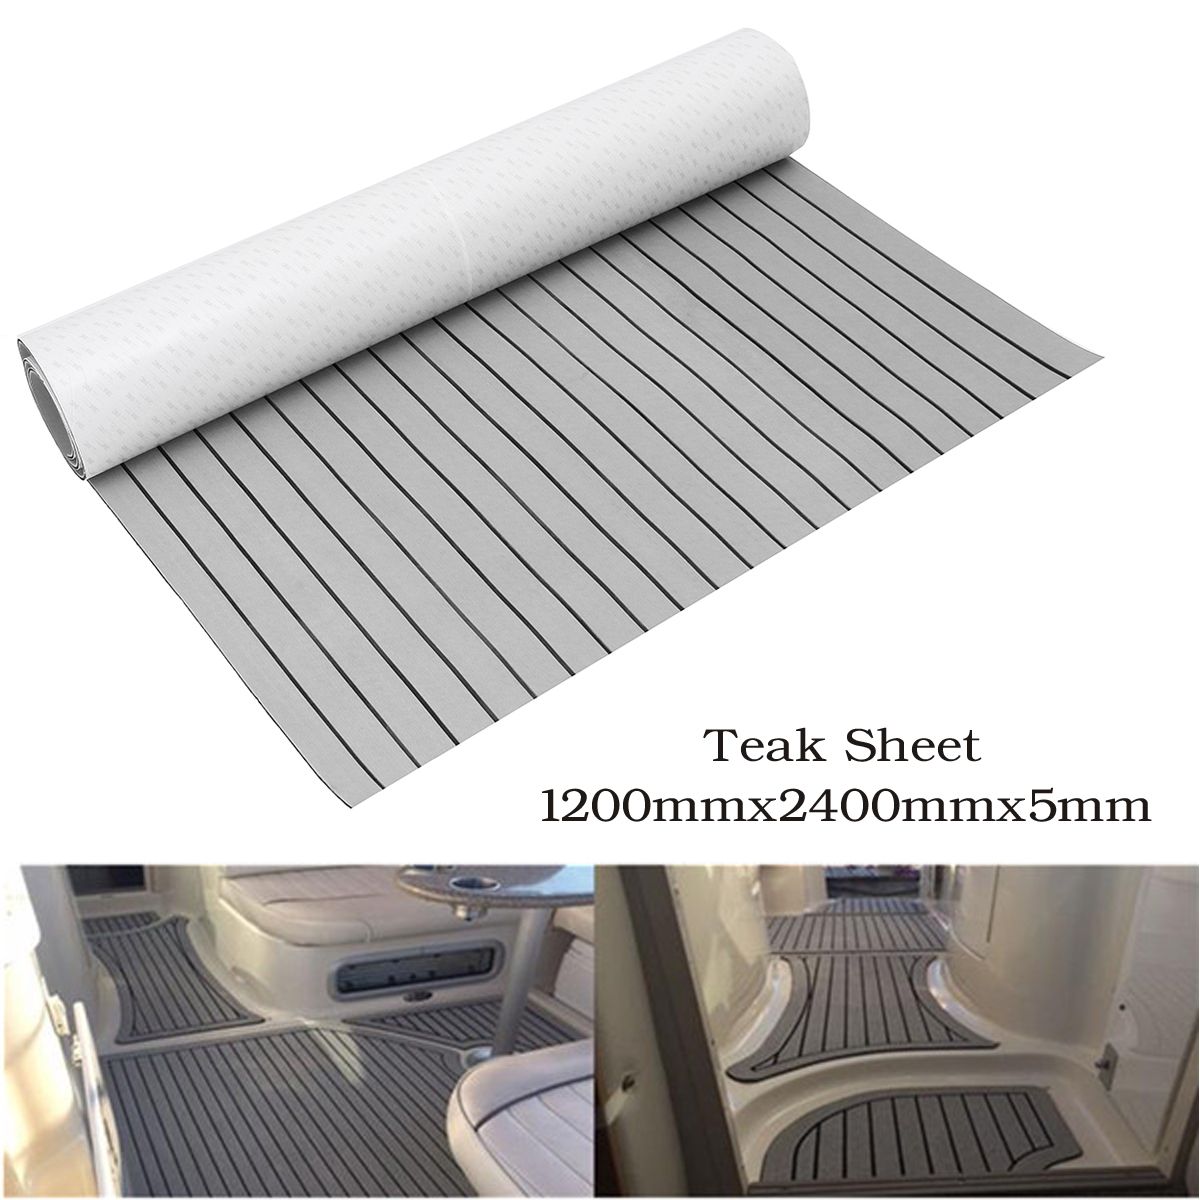 120cmx240cm 5mm Marine Teak Flooring Self Adhesive EVA Foam Teak Sheet Teak Boat Decking Car Boat Yacht Synthetic Floor Mat Grey120cmx240cm 5mm Marine Teak Flooring Self Adhesive EVA Foam Teak Sheet Teak Boat Decking Car Boat Yacht Synthetic Floor Mat Grey